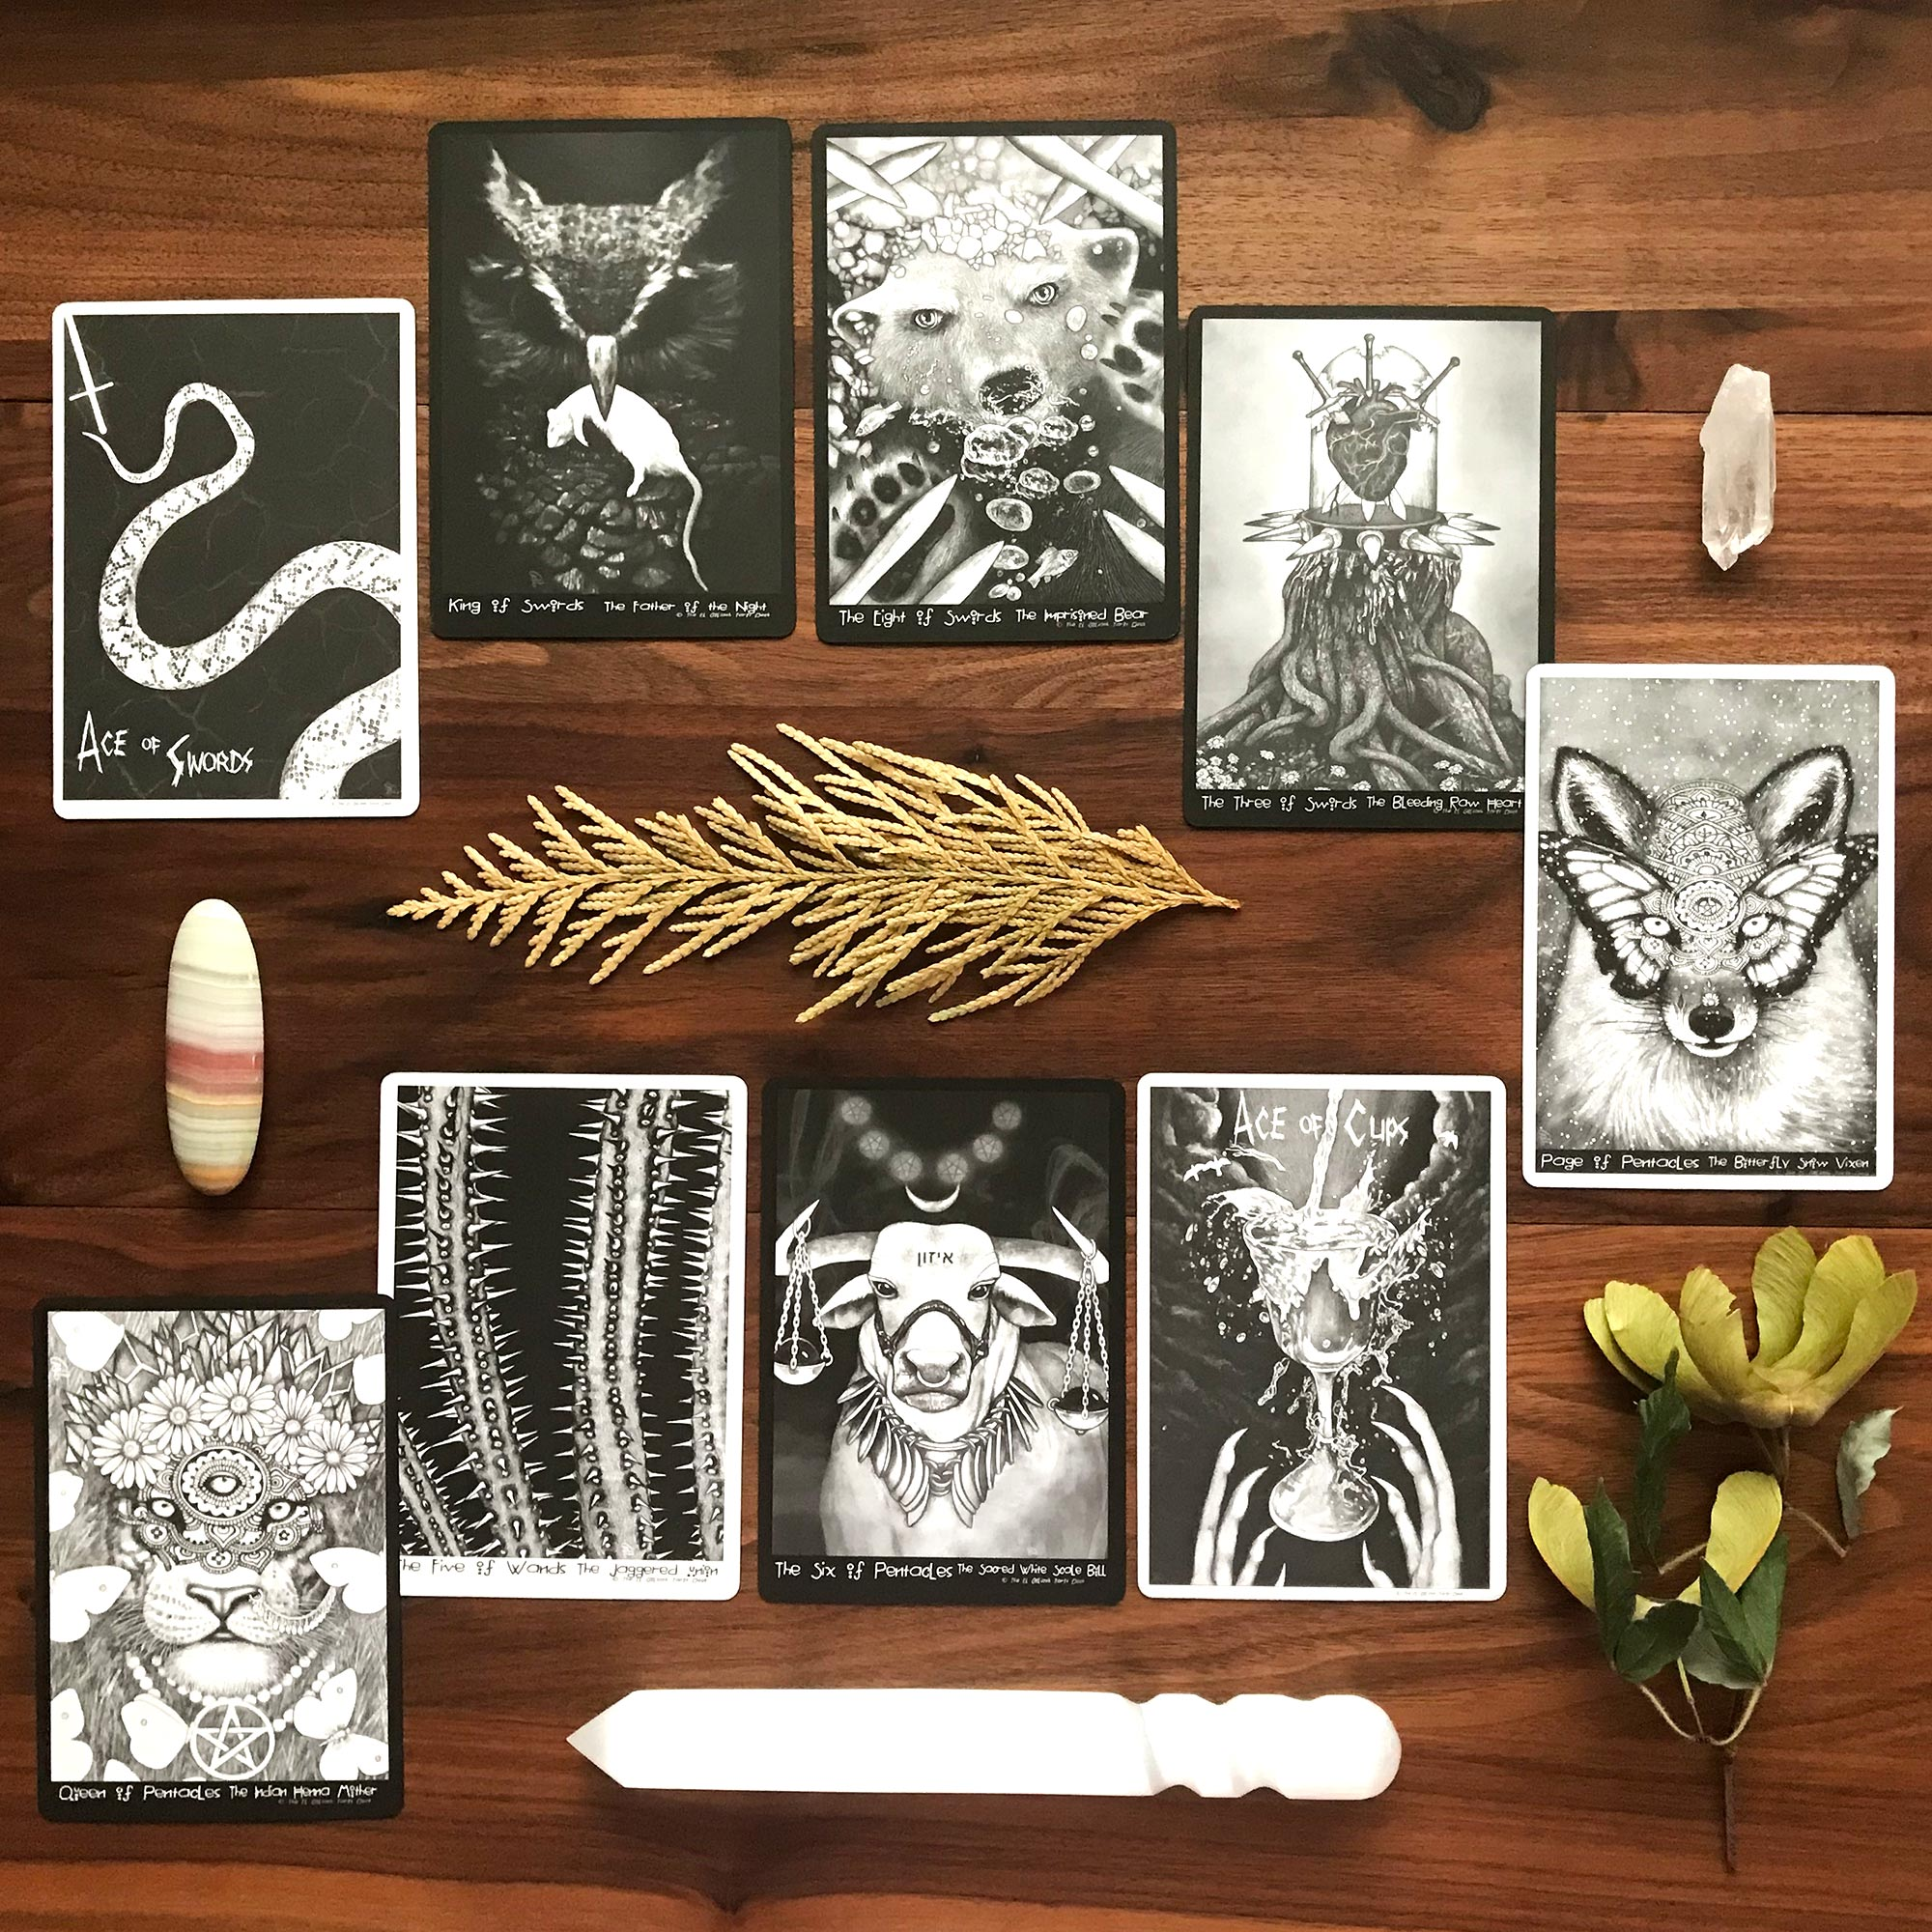 El Goliath Tarot 2nd Edition